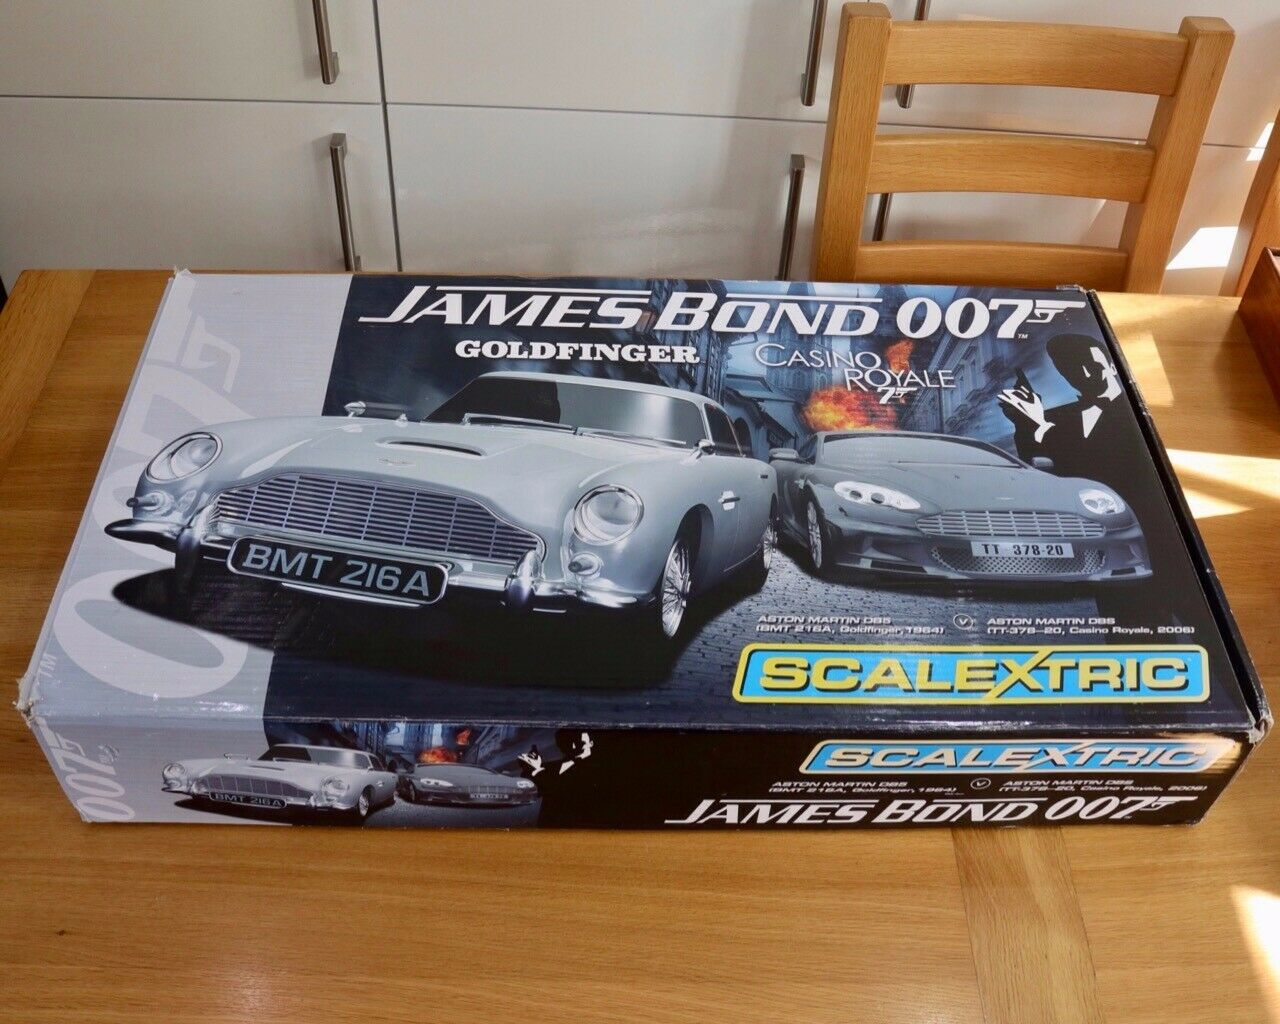 Scalextric set, James Bond Casino Royale, boxed and complete